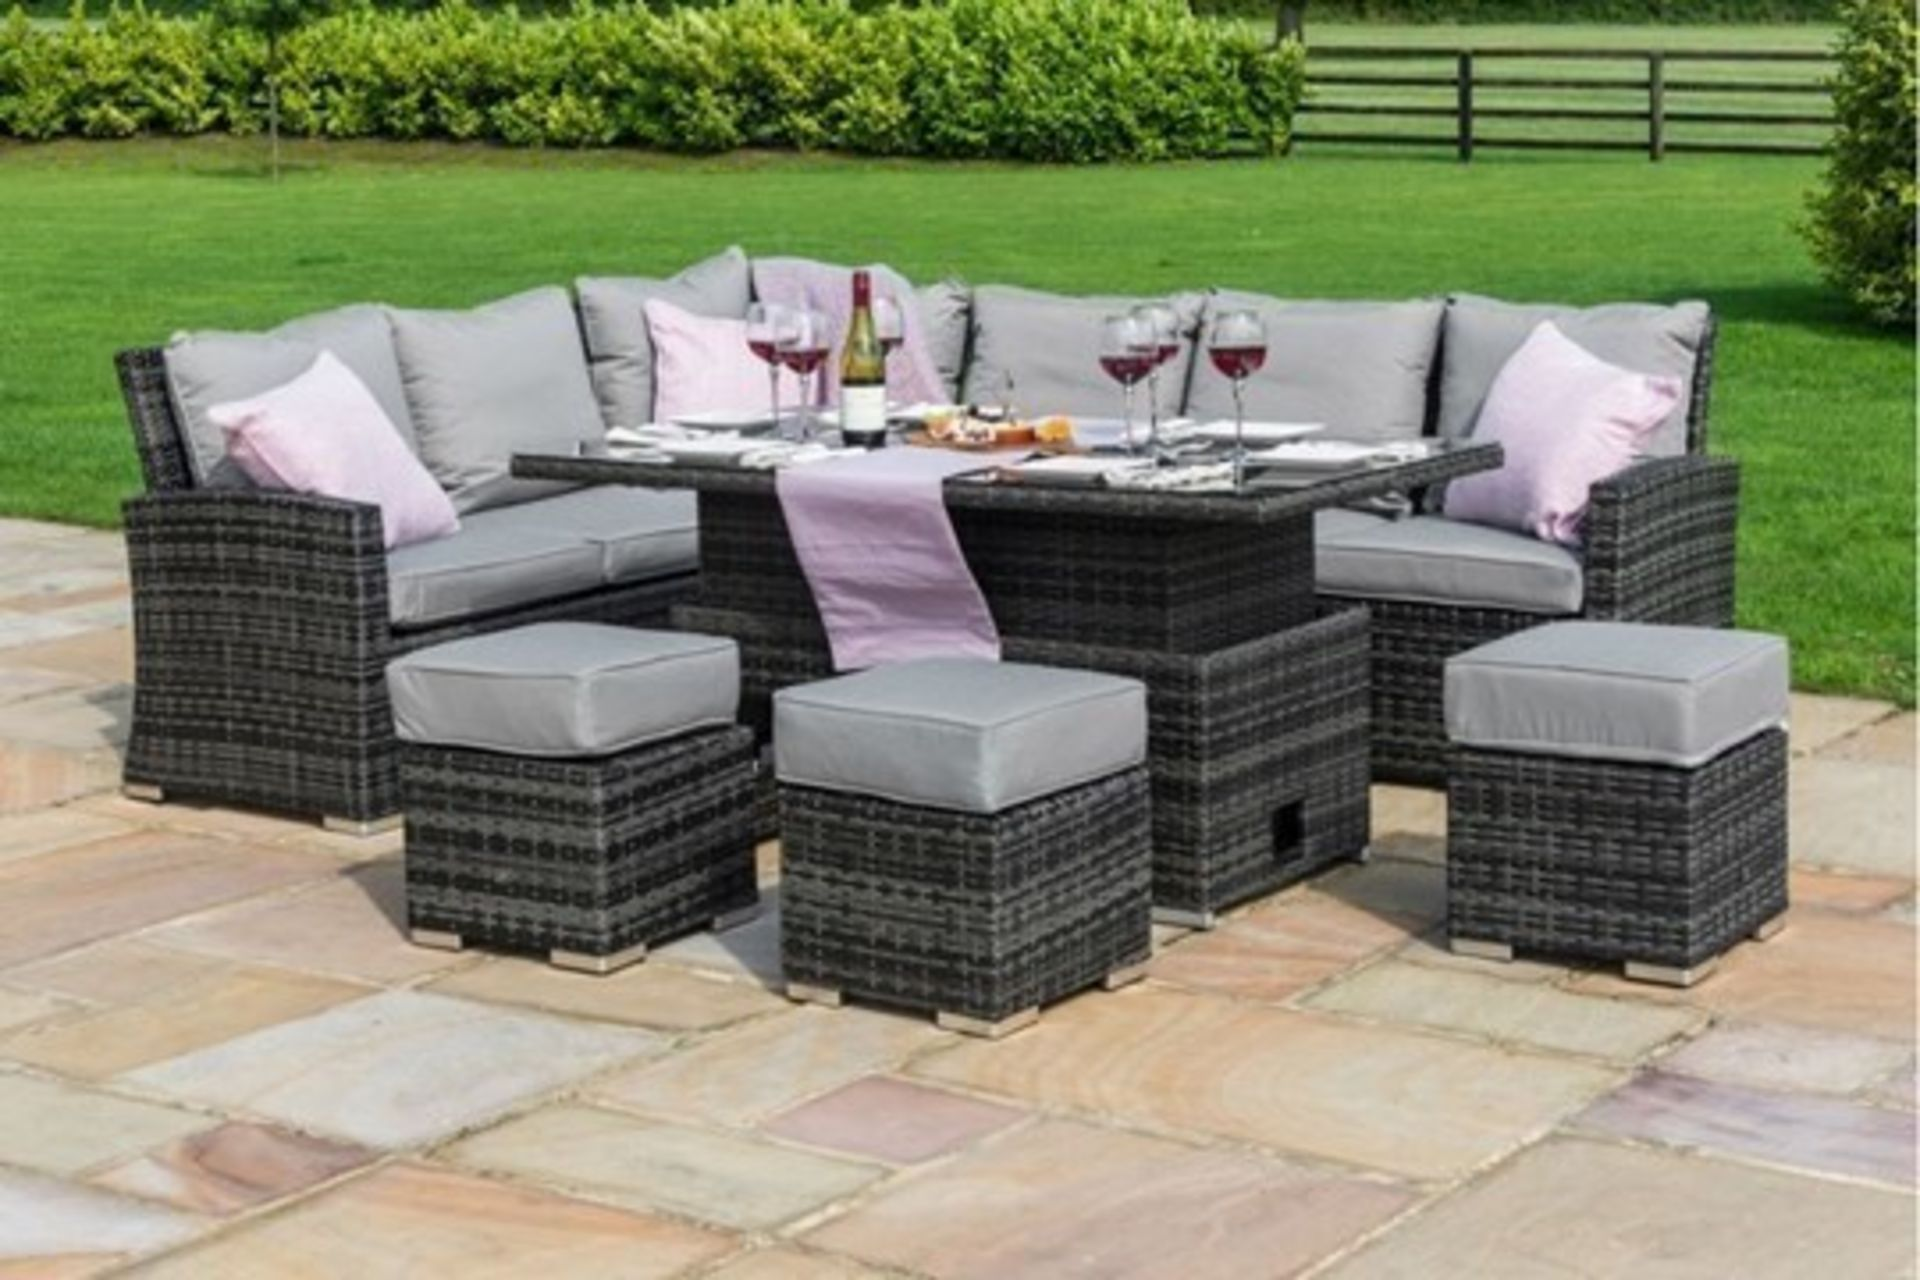 Rattan Kingston Corner Outdoor Dining Set With Rising Table (Grey) *BRAND NEW* - Image 2 of 3